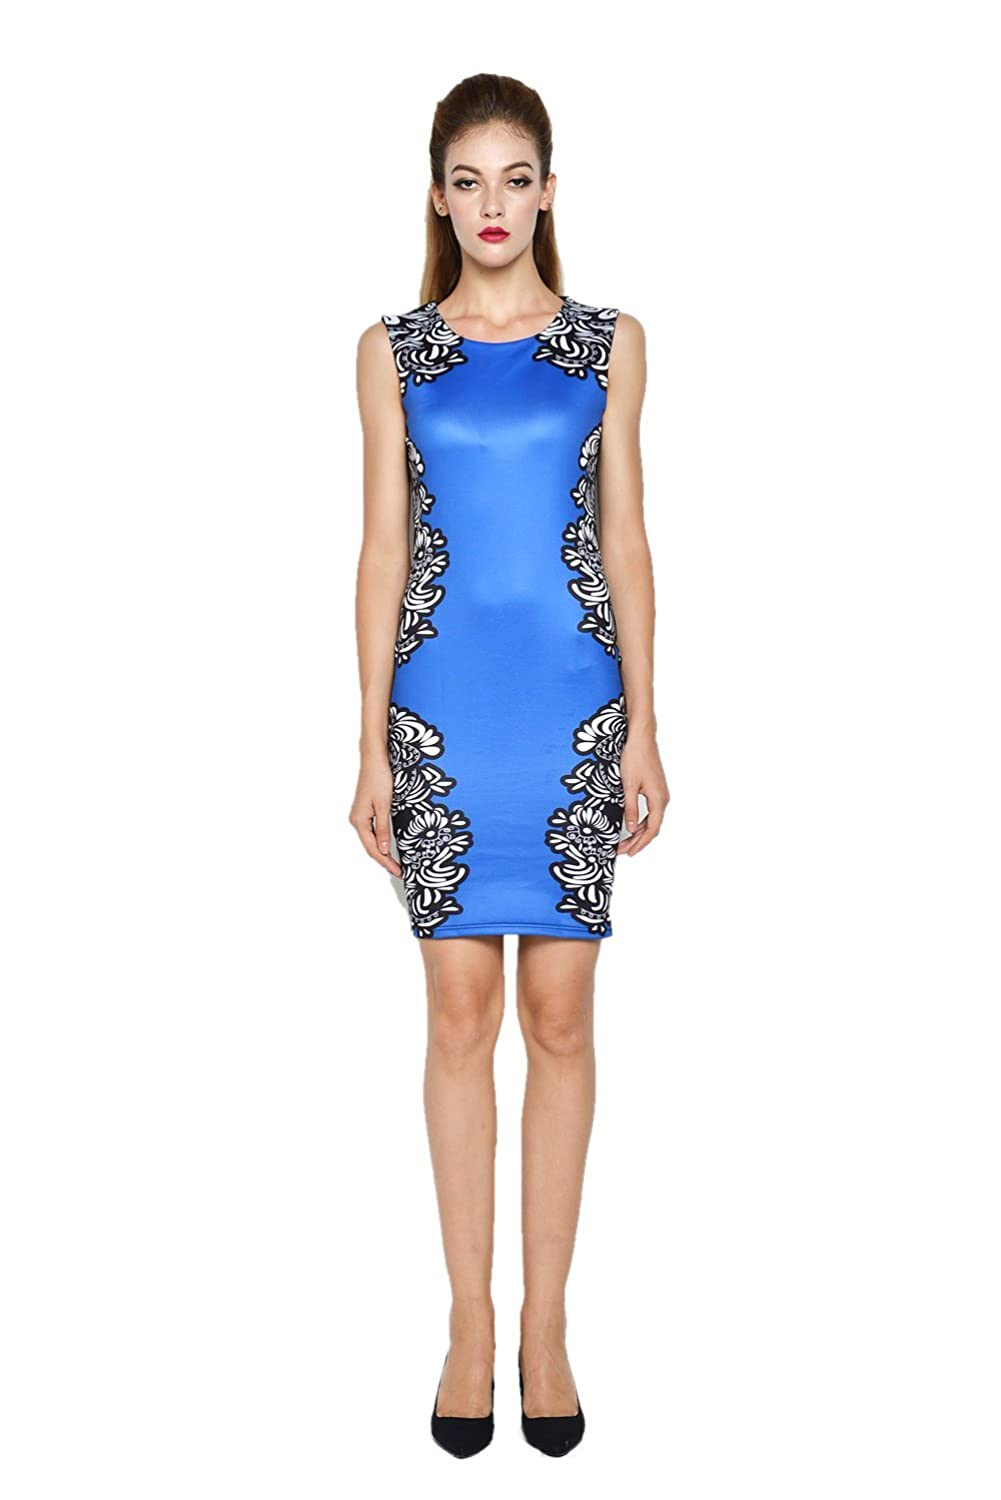 Darshion Women's Summer Vintage Round-Neck Floral Print Bodycon Business Party Dress